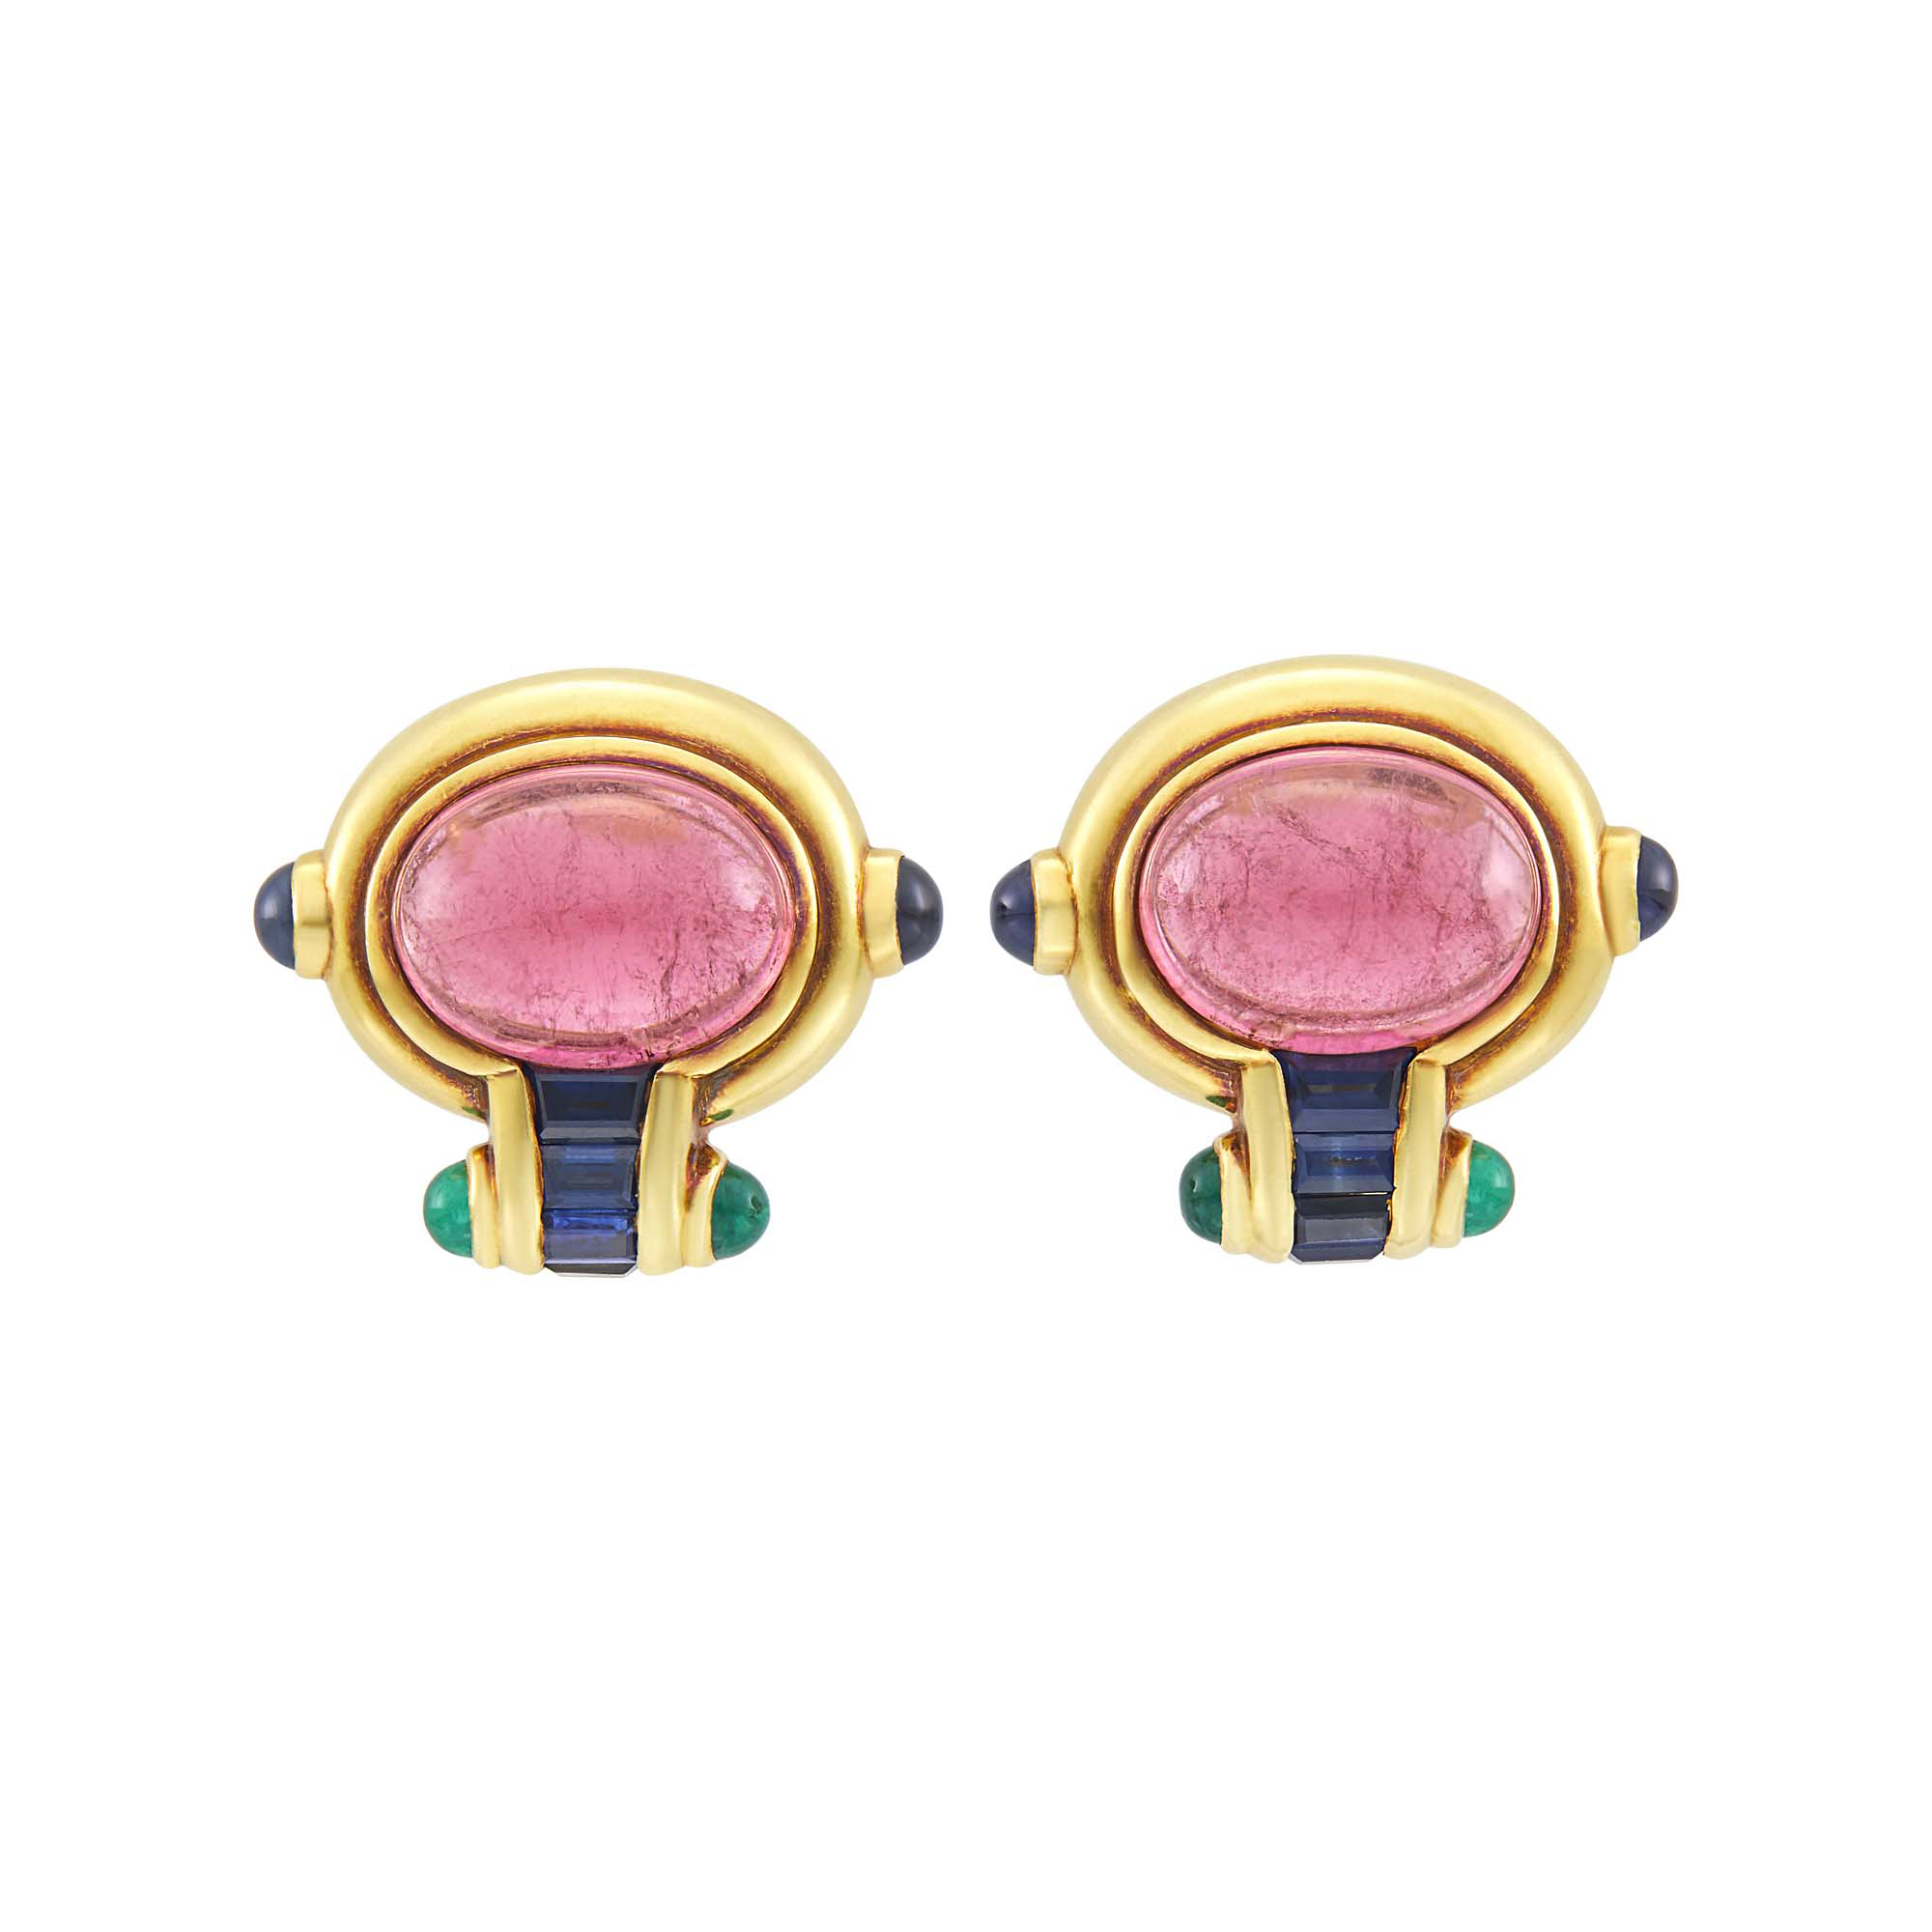 Lot image - Pair of Gold, Cabochon Pink Tourmaline, Sapphire and Cabochon Emerald Earrings